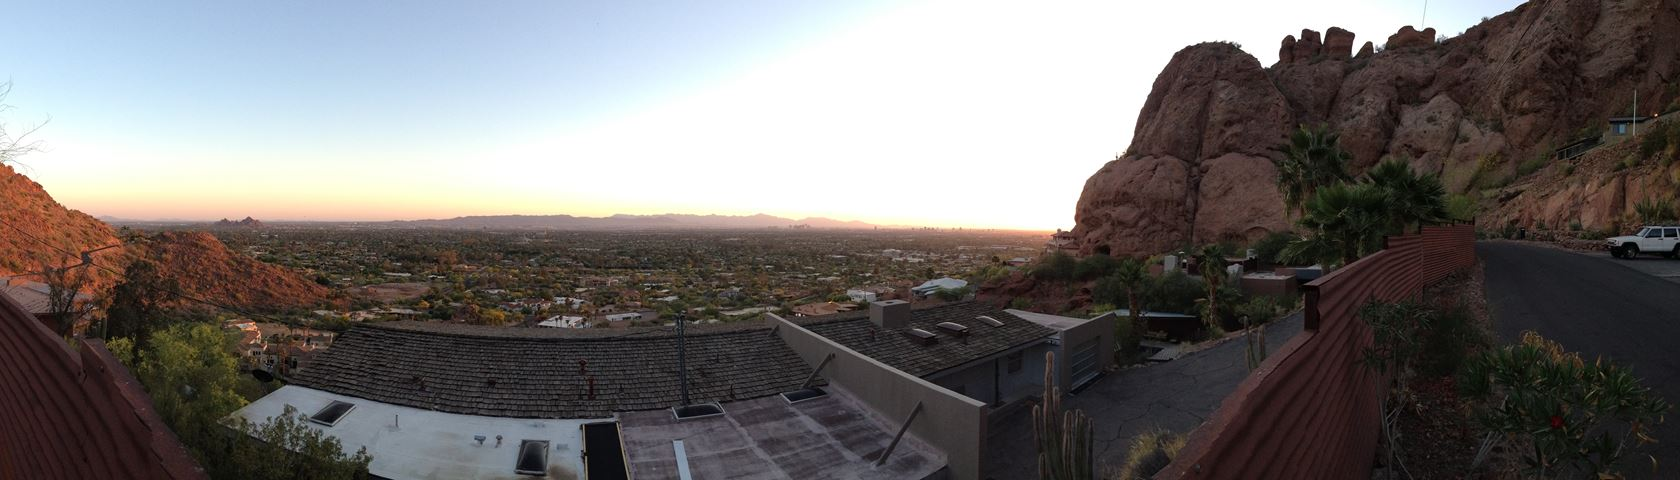 View from my home in Phoenix, AZ